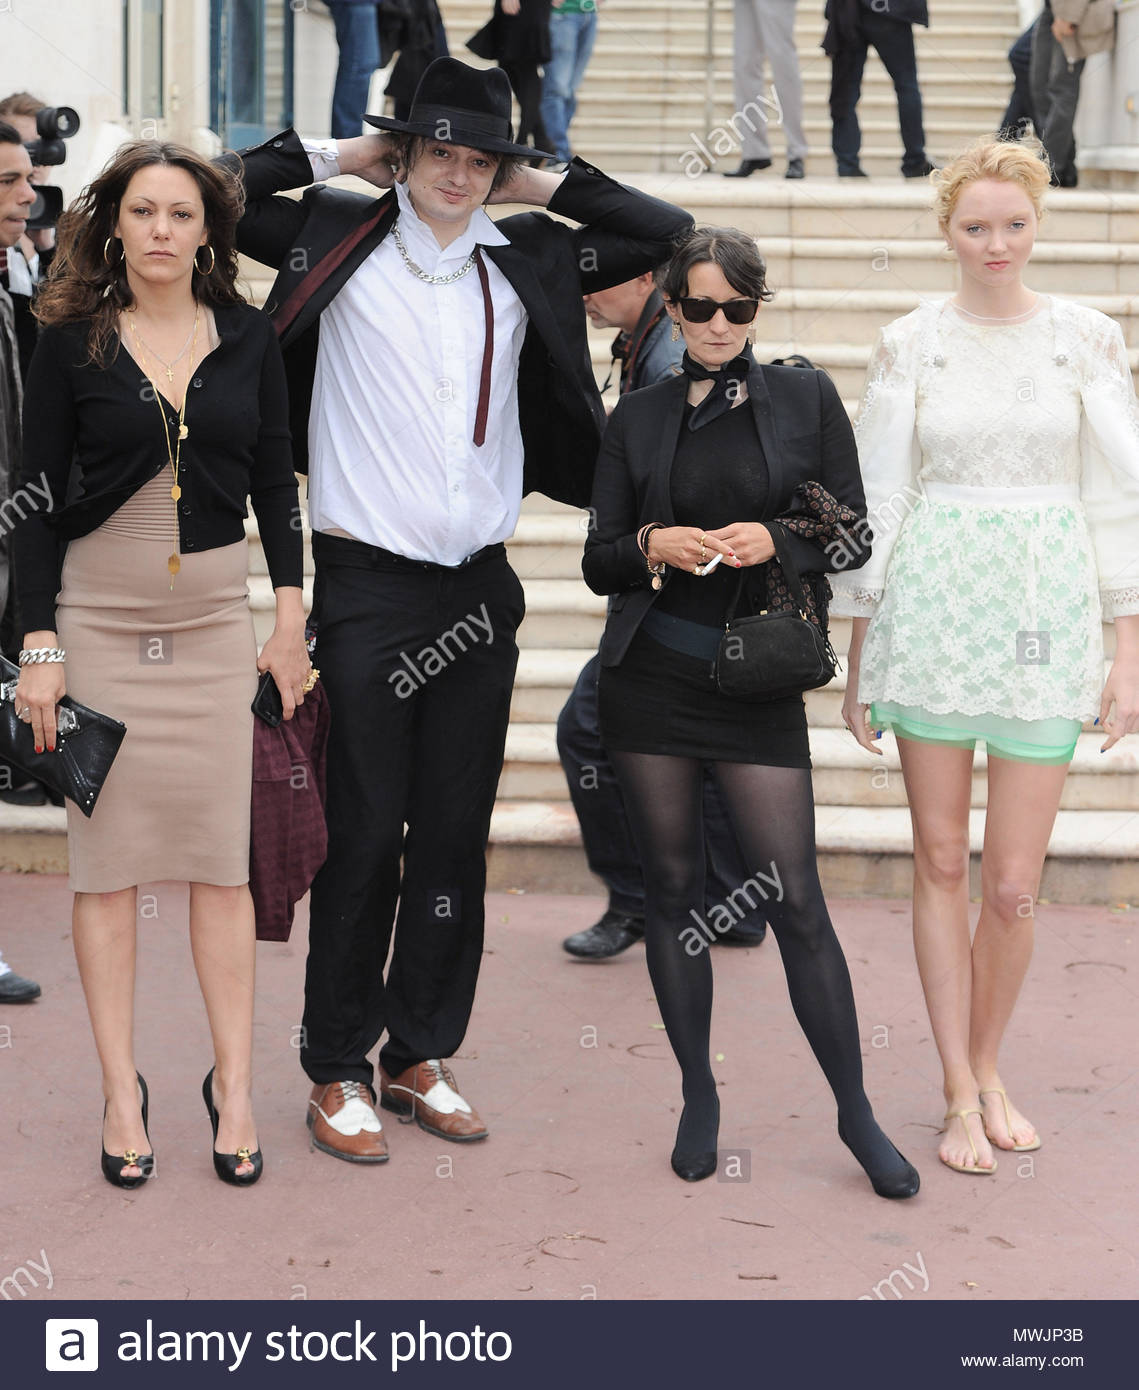 Lily Cole, Pete Doherty, Karole Rocher. Pete Doherty and Lily Cole attend a  photo call in Cannes.